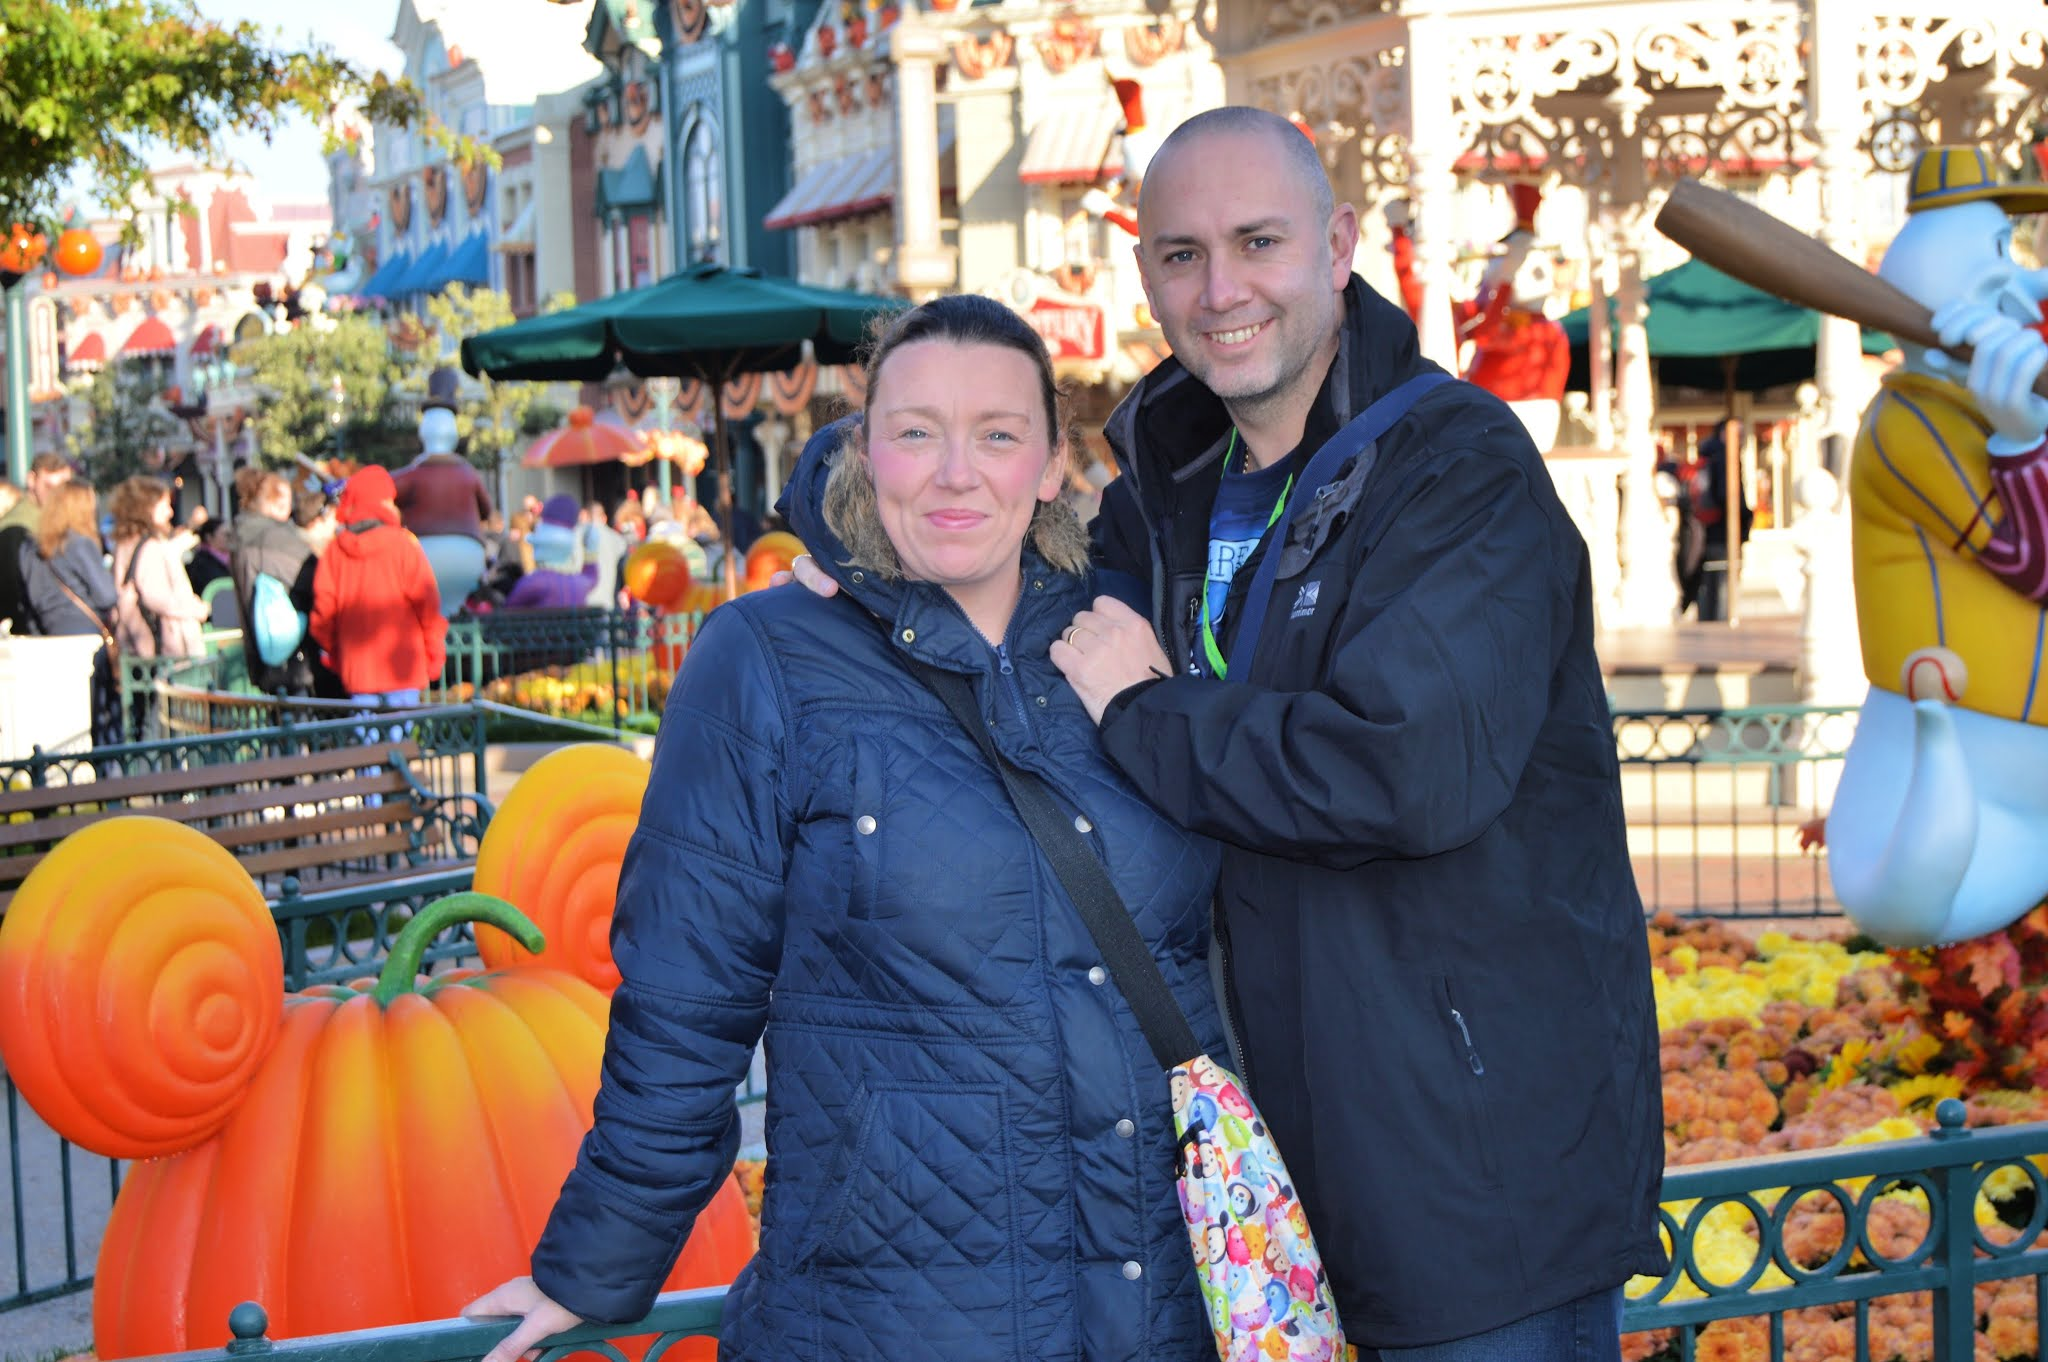 a couple by a Pumpkin at Disneyland Paris